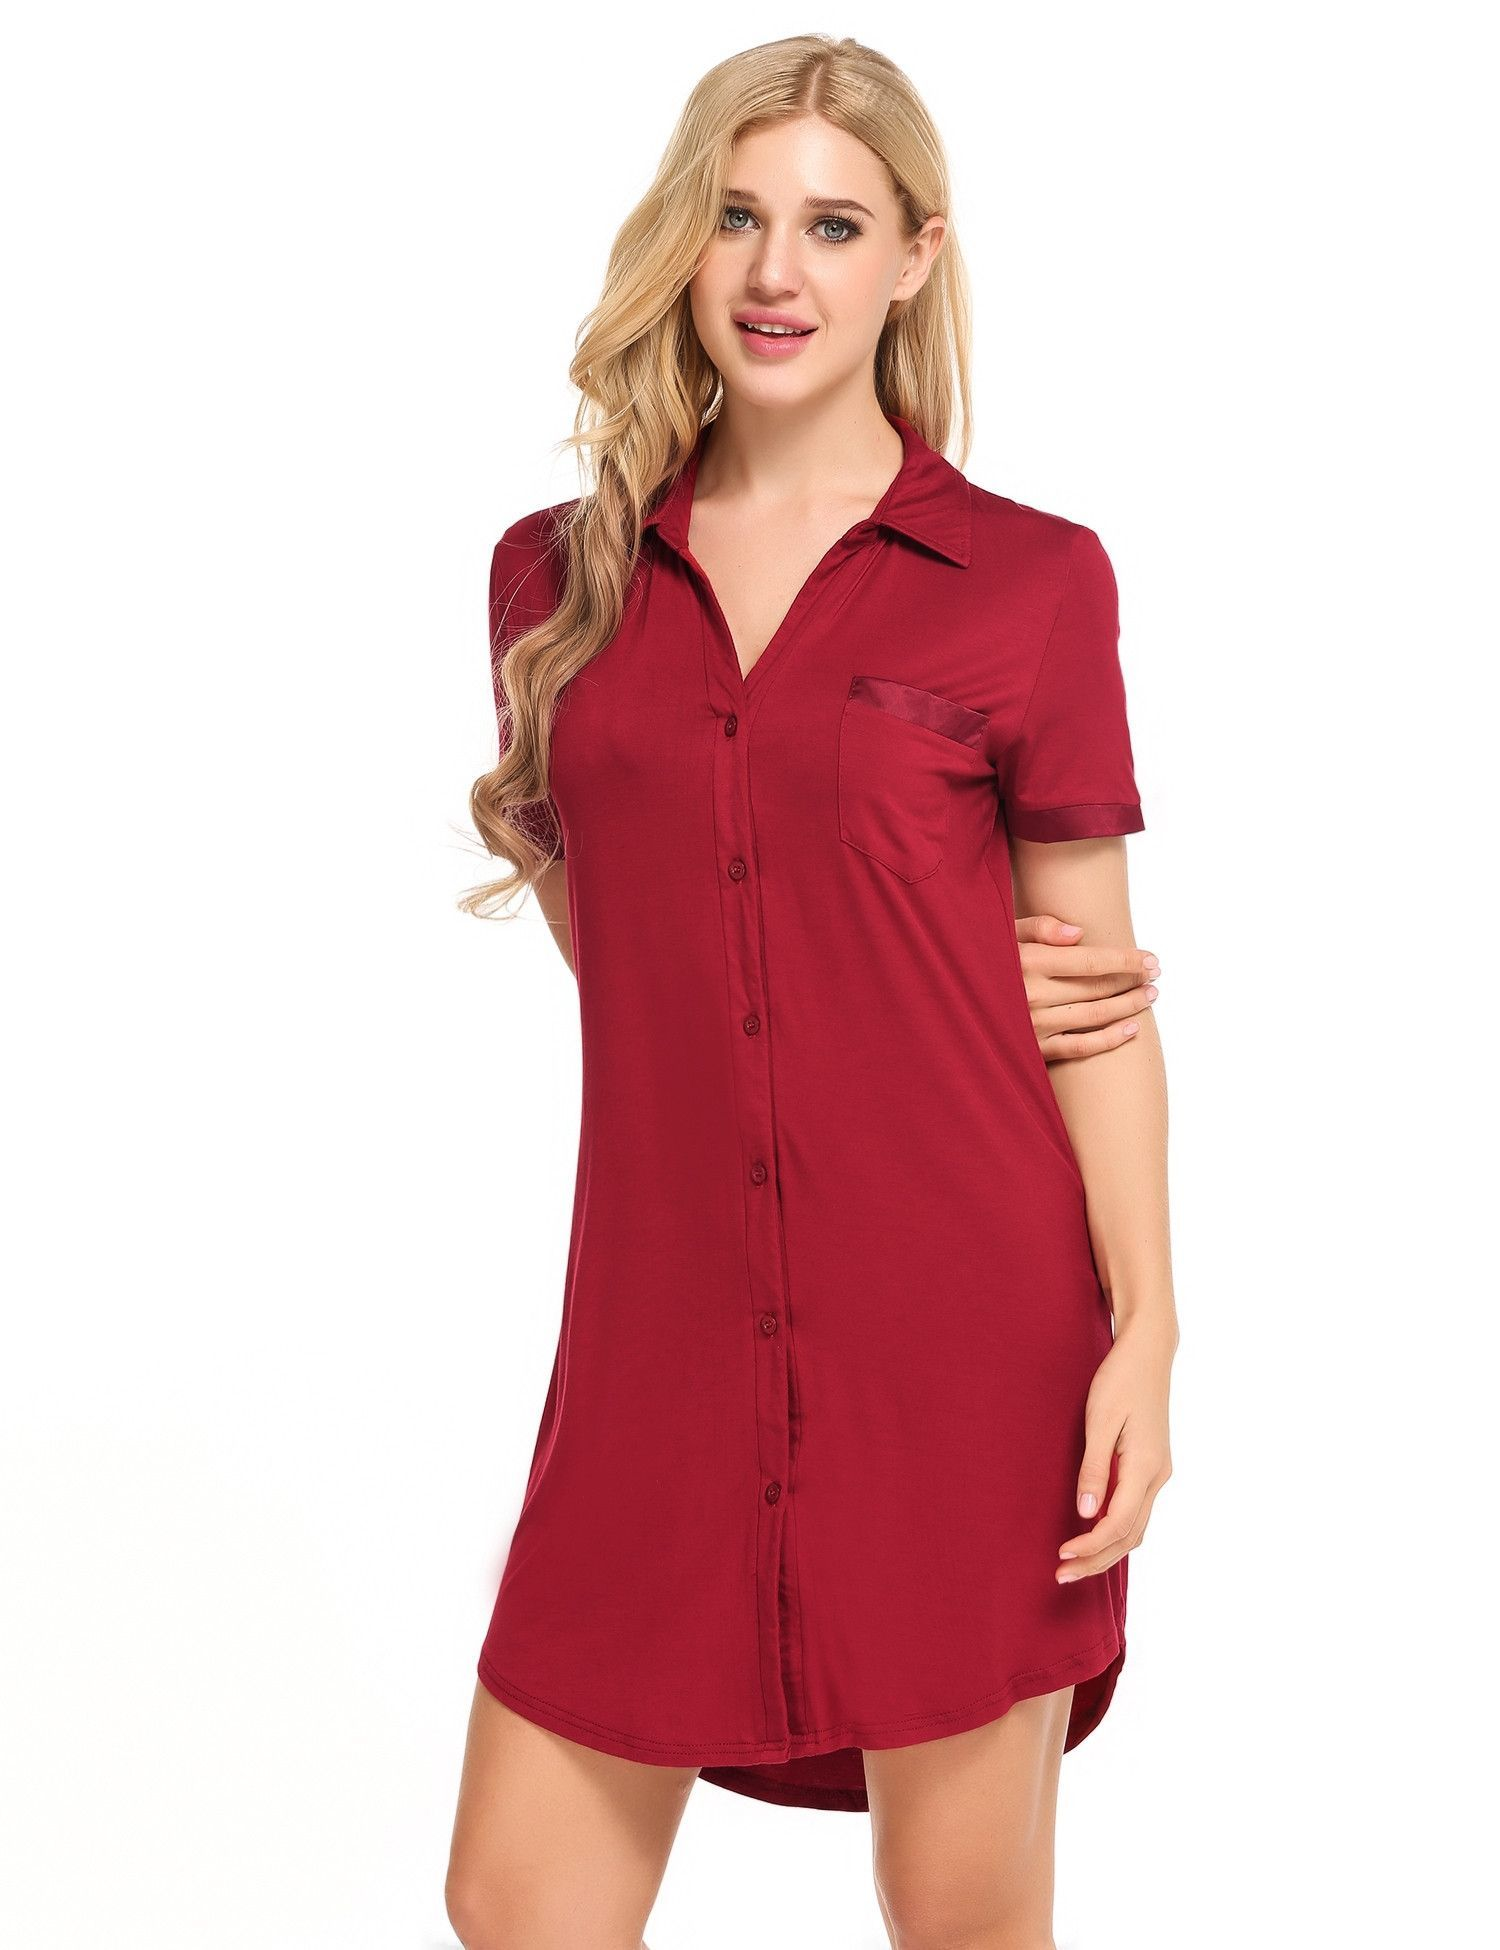 Navy blue short sleeve button down sleepshirt dress sleepwear